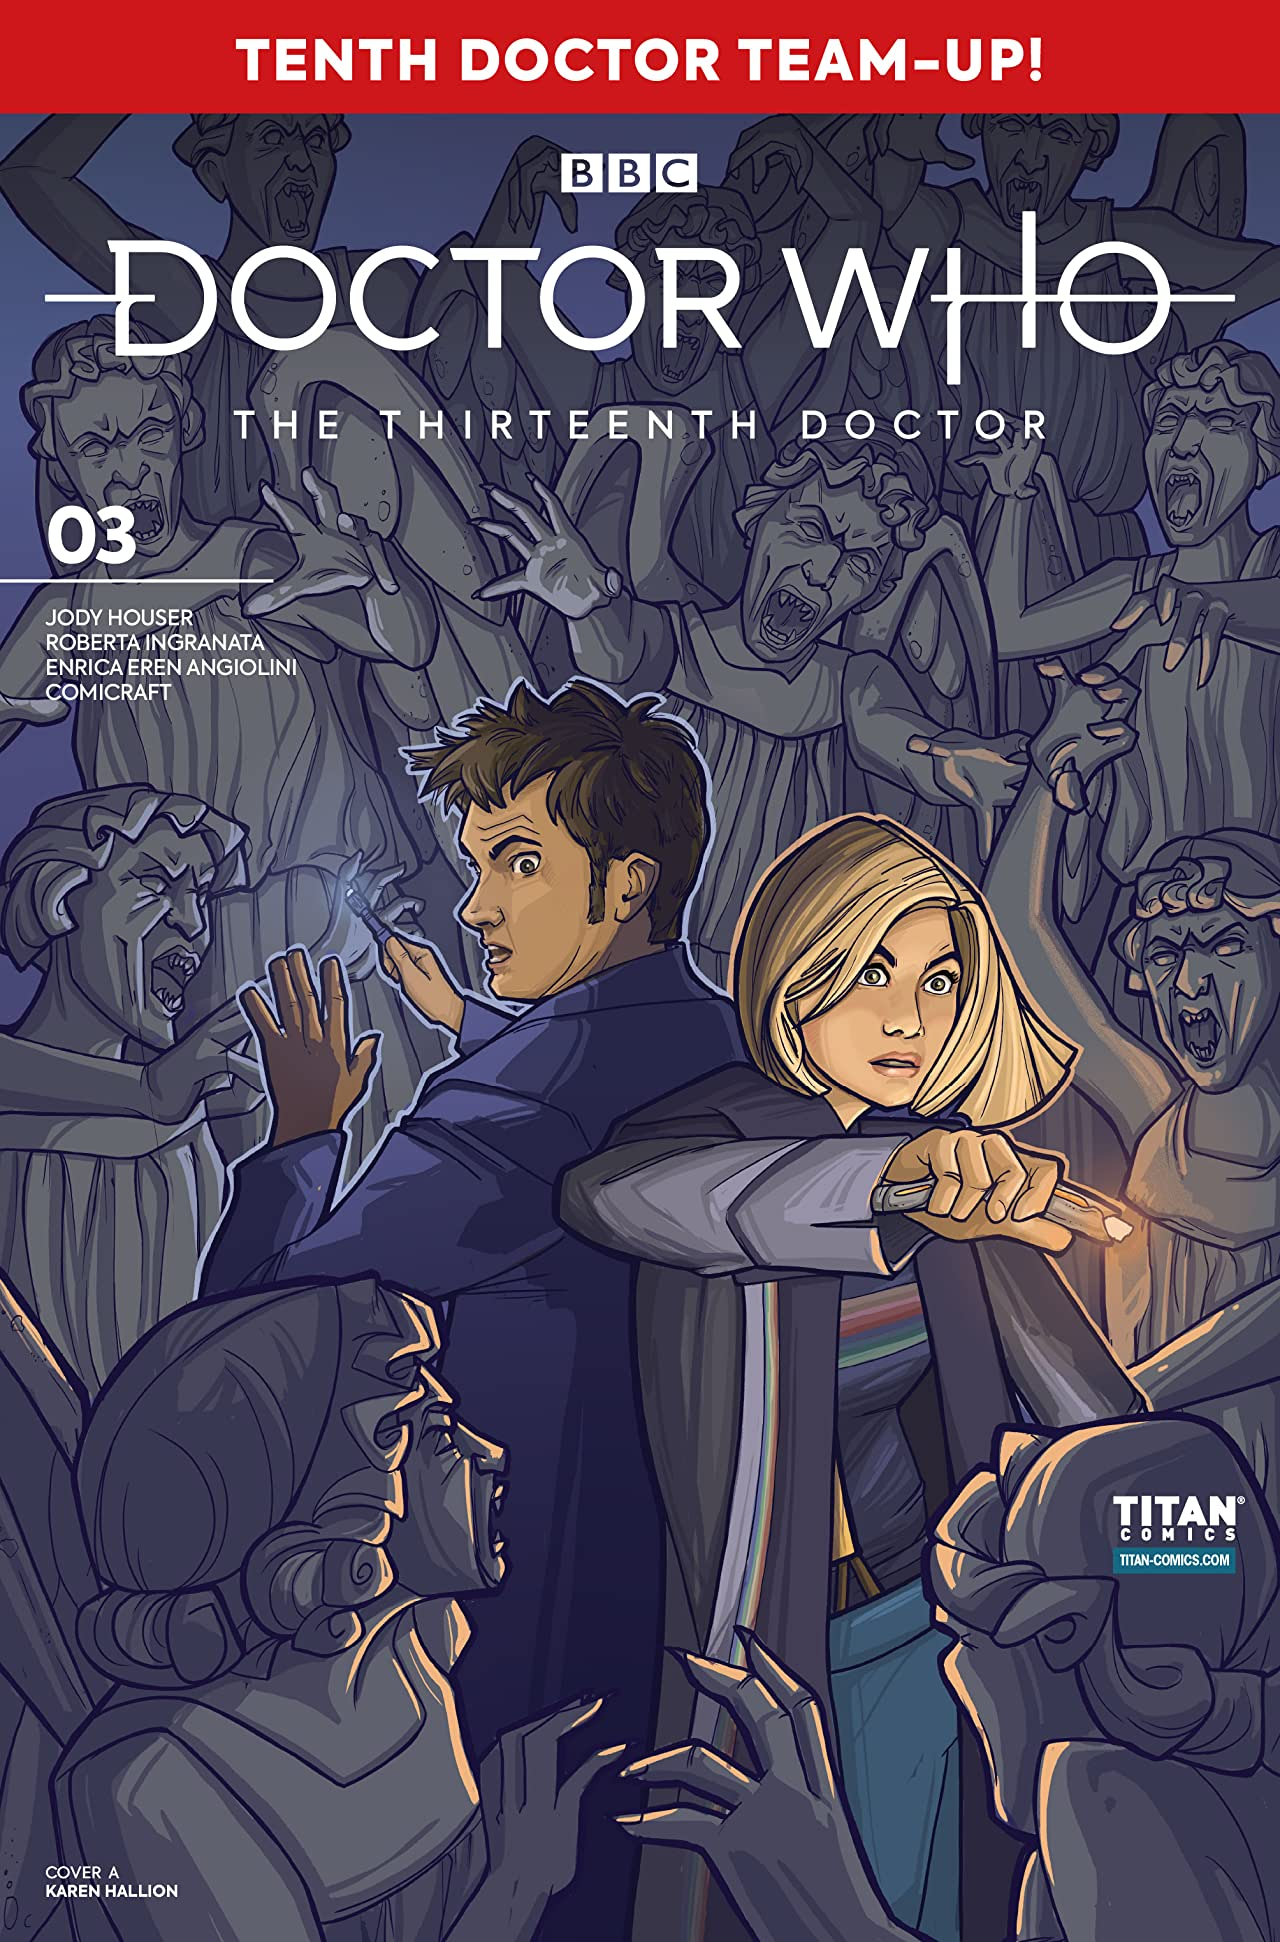 Doctor Who: The Thirteenth Doctor No.2.3